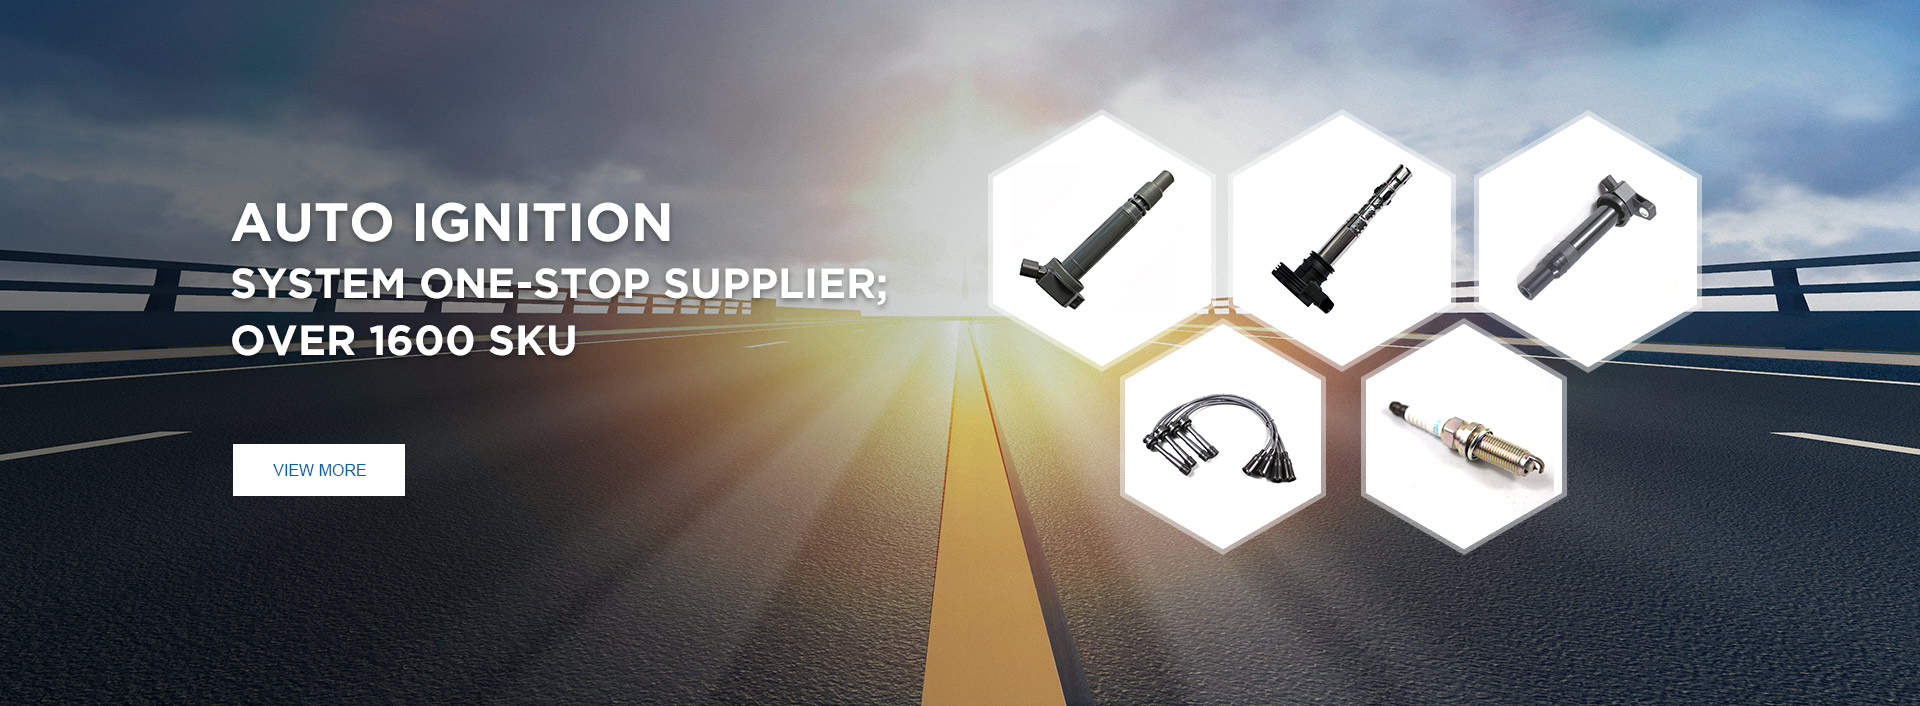 Auto Ignition System Products